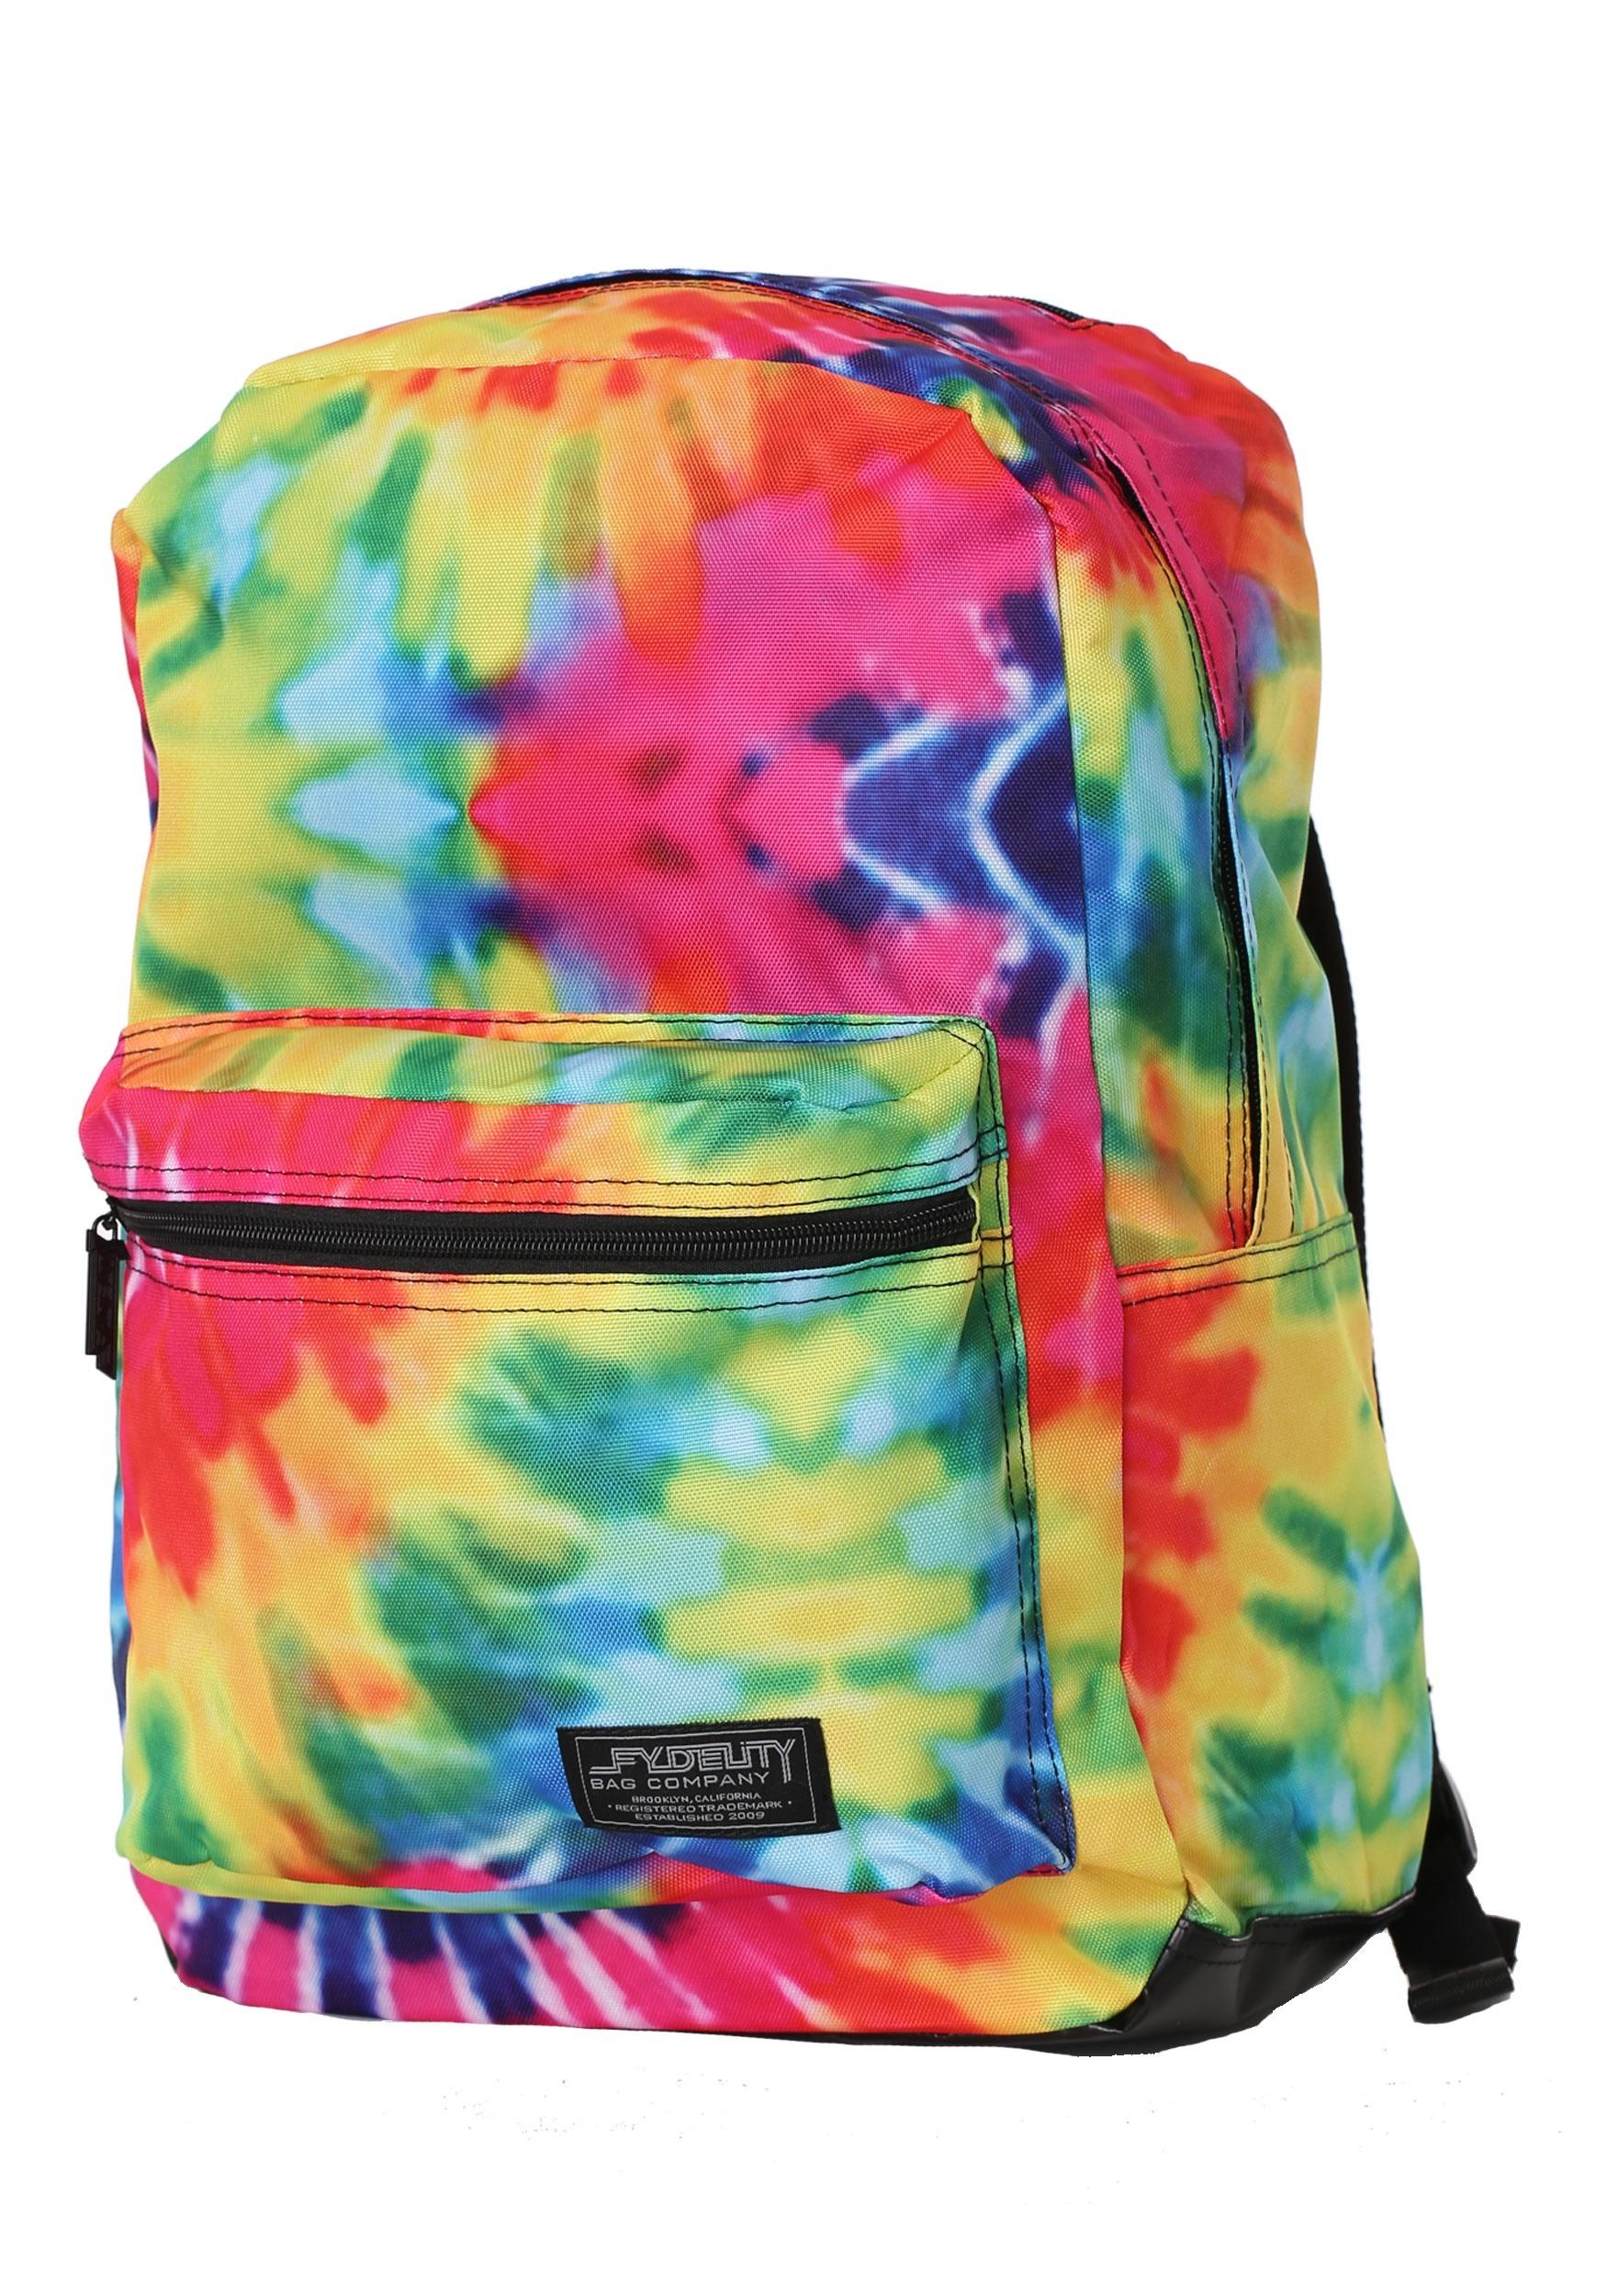 Awe Inspiring Tie Dye Print Fydelity Backpack Squirreltailoven Fun Painted Chair Ideas Images Squirreltailovenorg